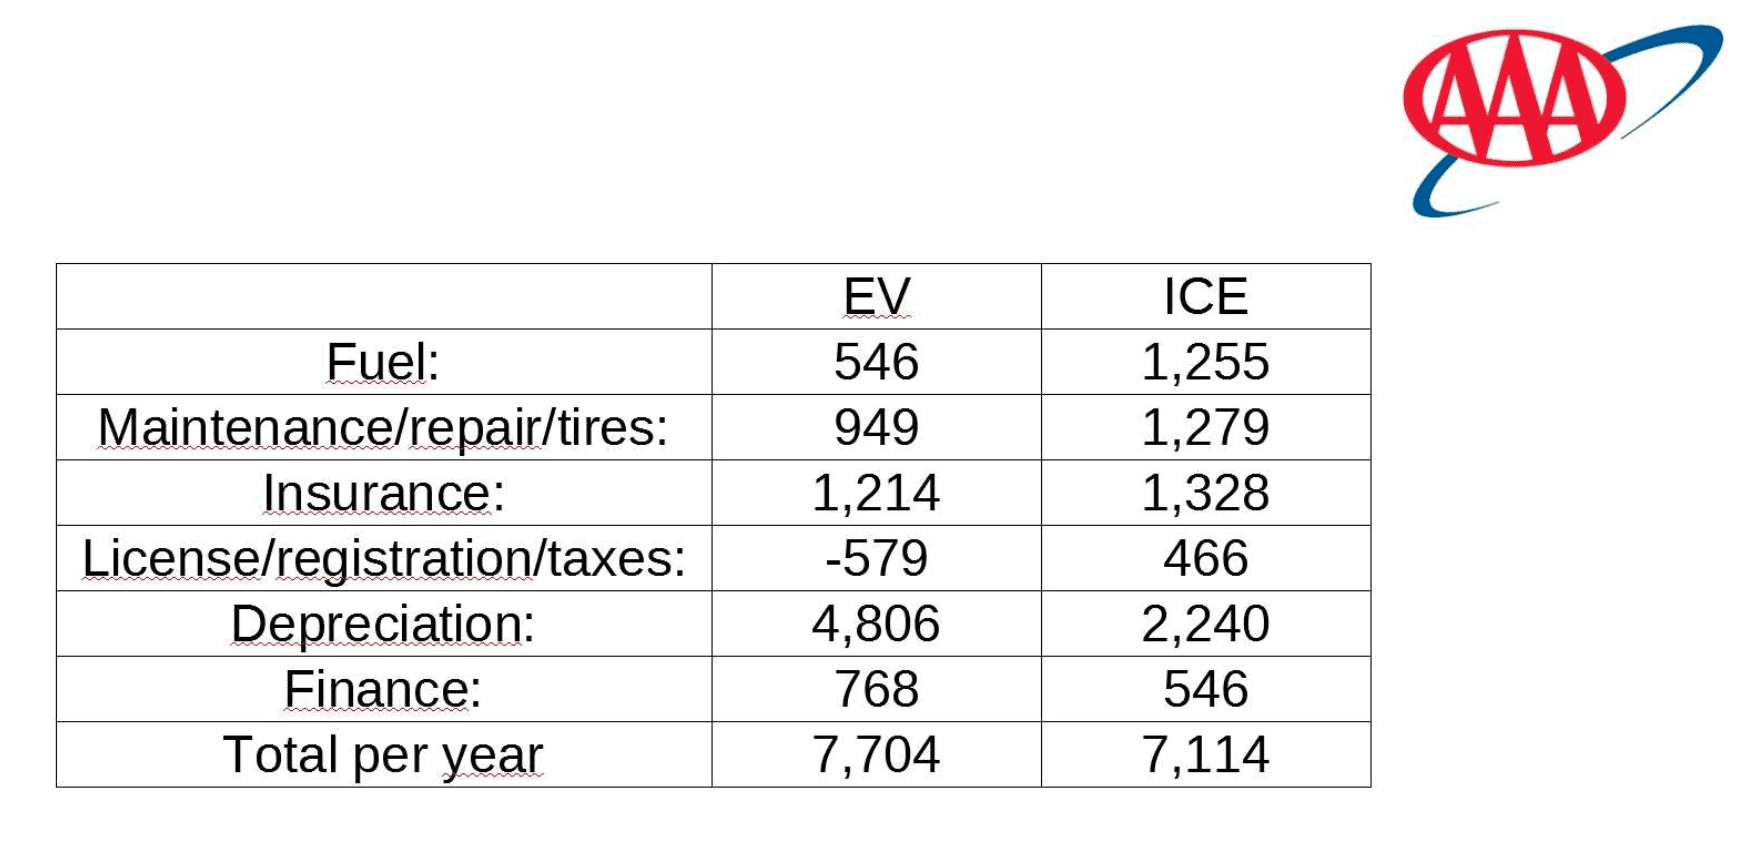 Graphic of AAA study on EV cost to own vs ICE